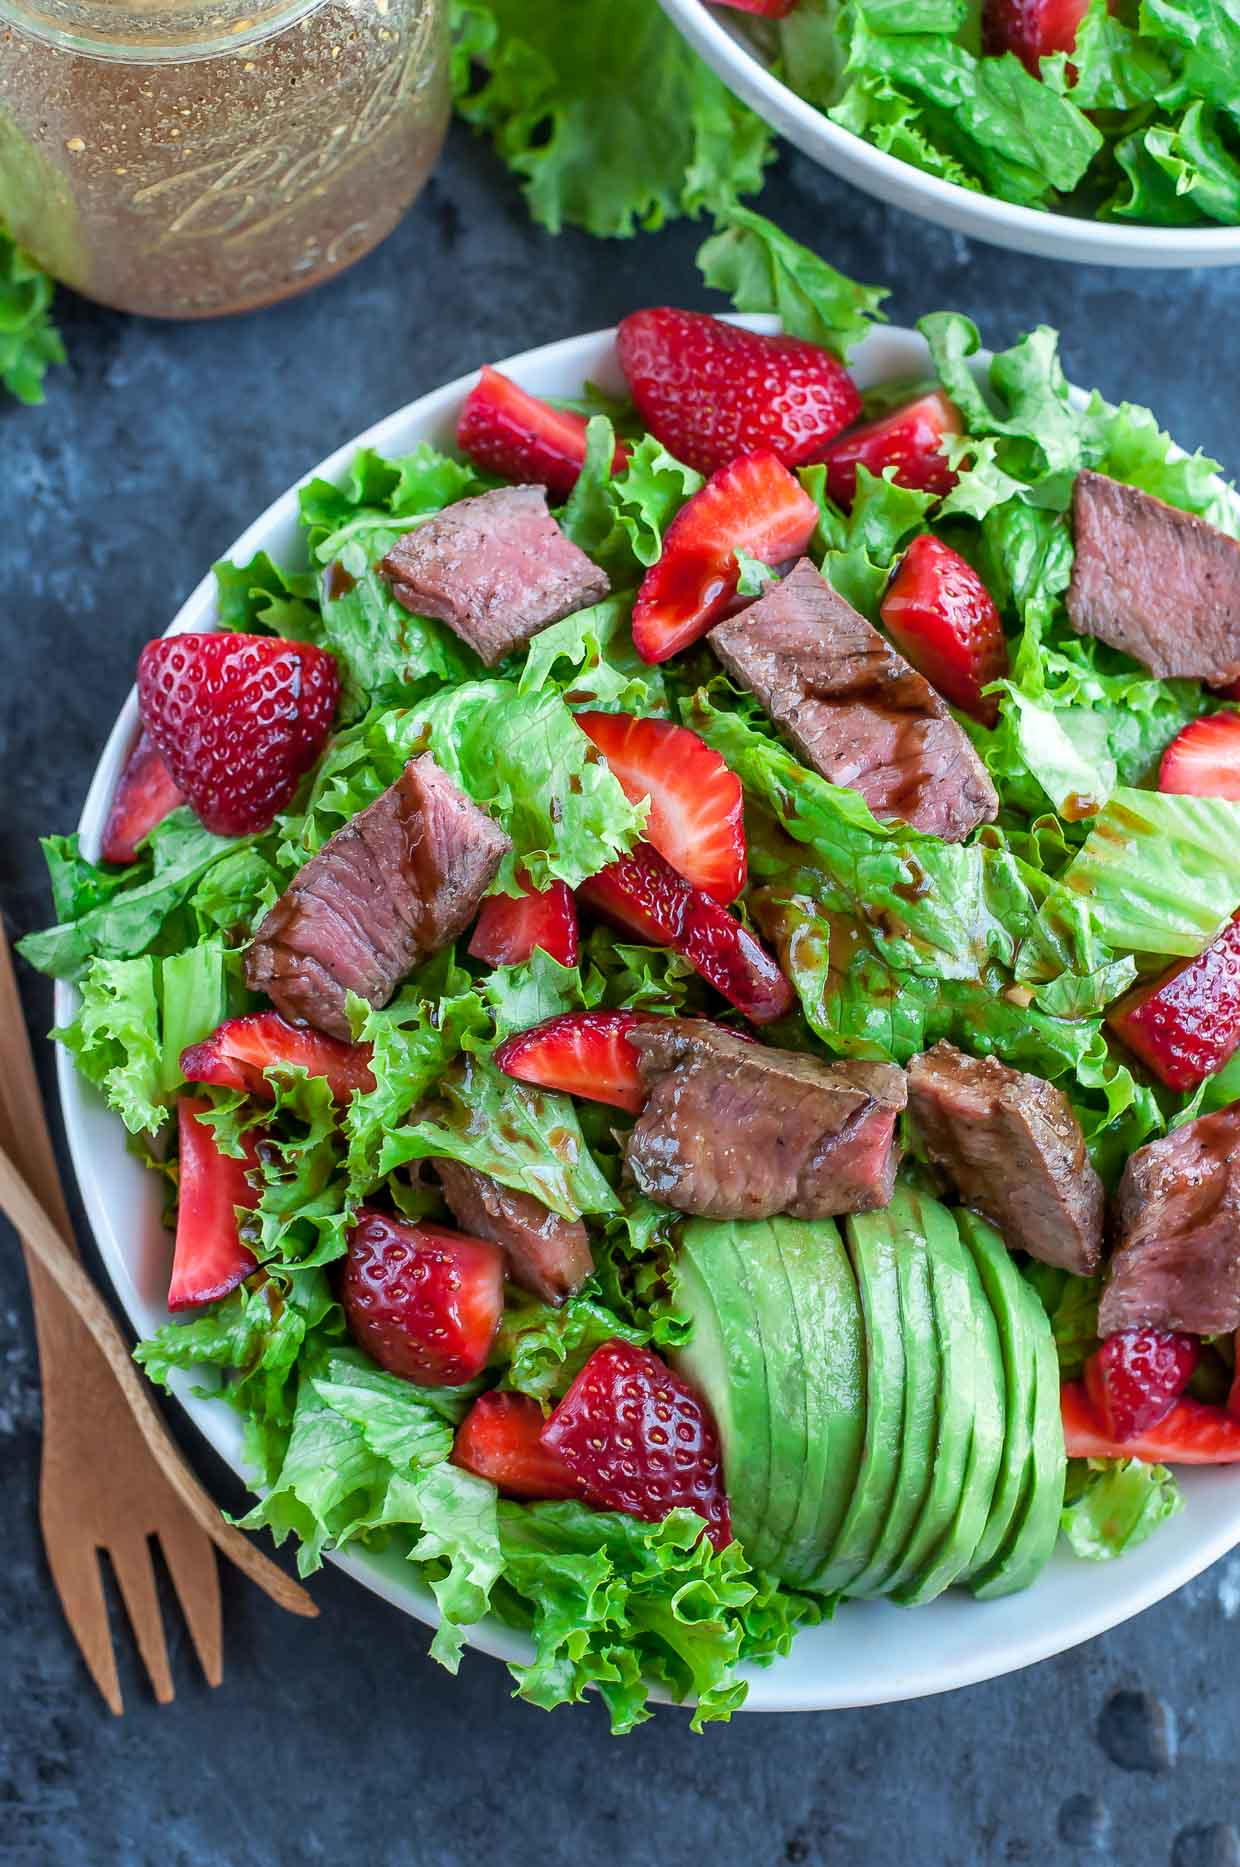 how to make strawberry salad dressing